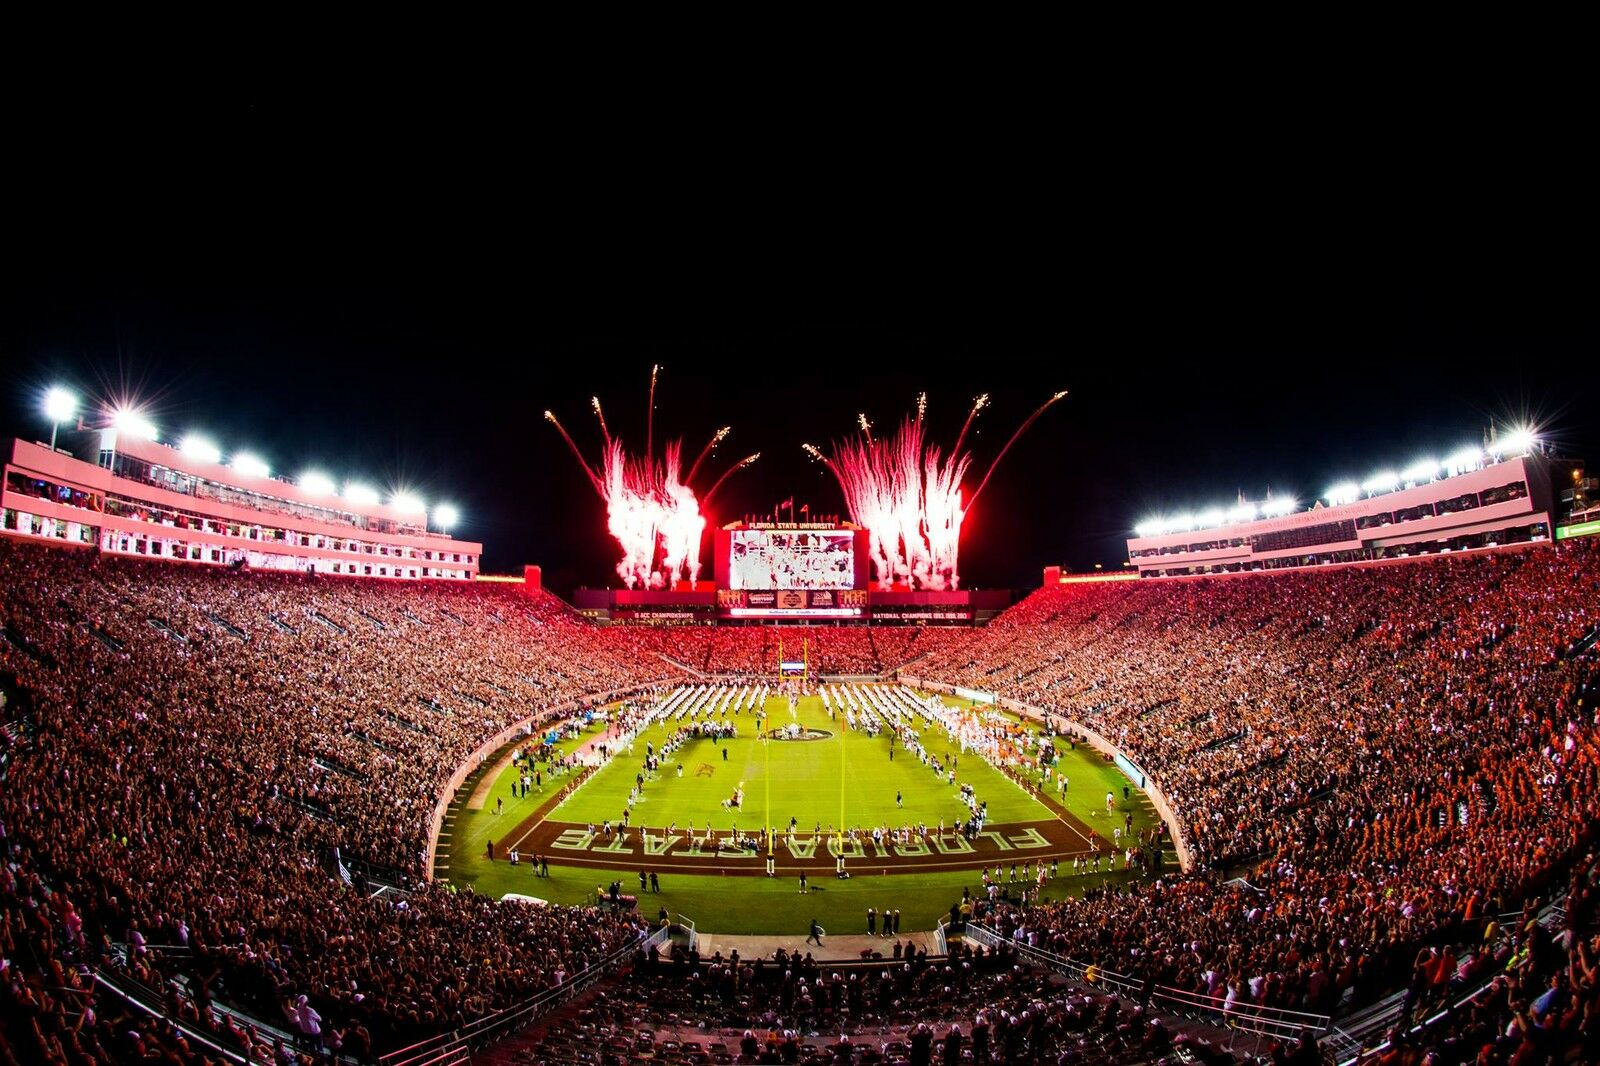 PARKING PASSES ONLY Virginia Tech Hokies at Florida State Seminoles Football